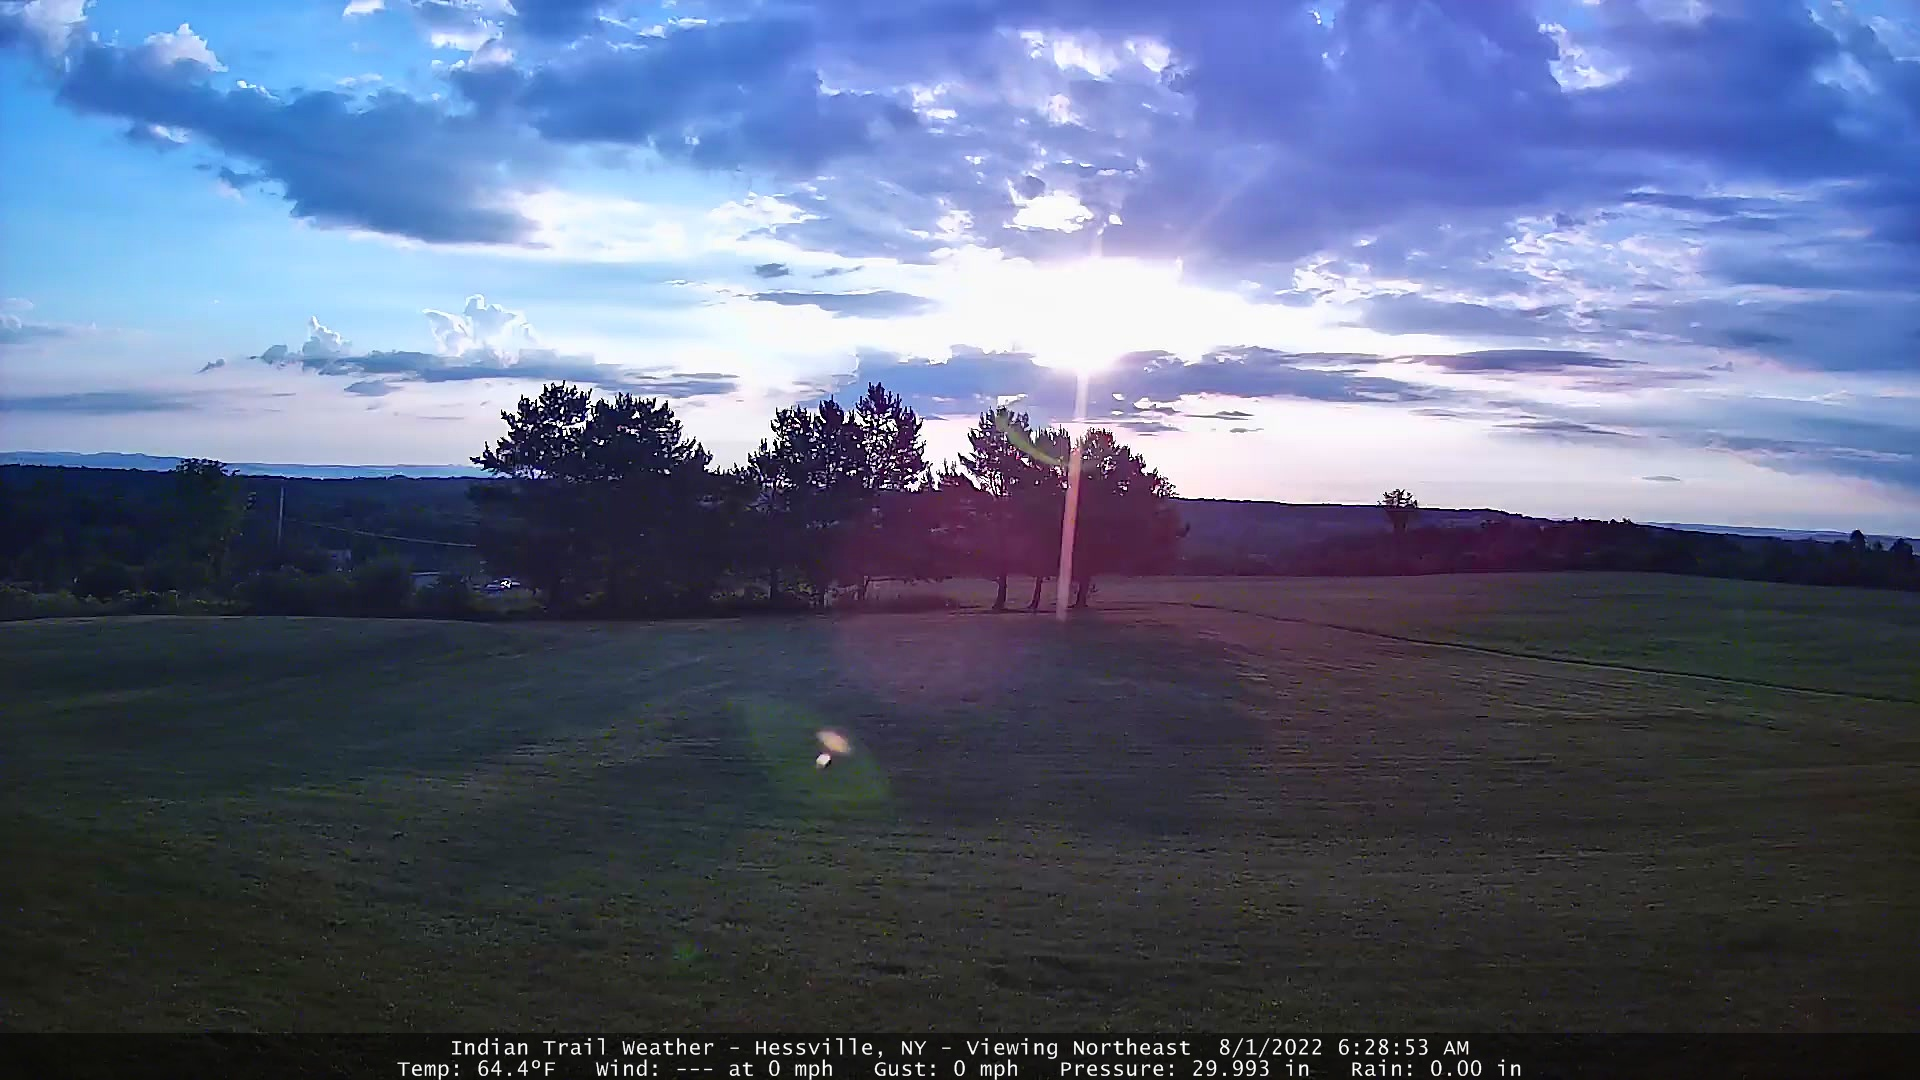 Indian Trail Weather Webcam - Viewing Northeast